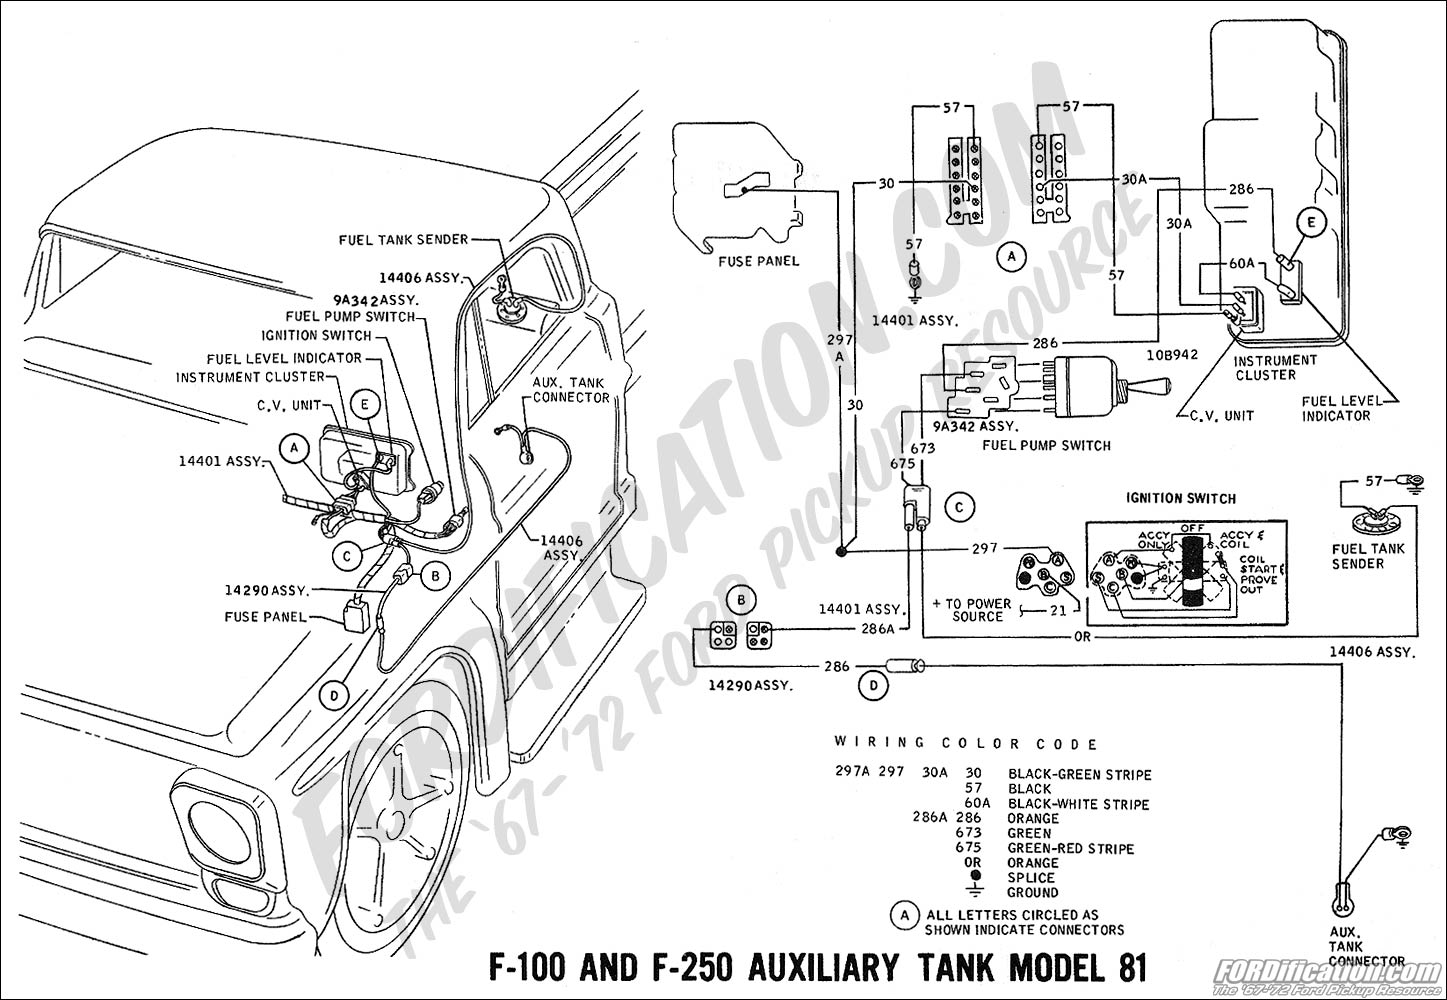 wiring_69aux fuel ford truck technical drawings and schematics section h wiring 1988 ford f250 fuse panel wiring diagram at mr168.co